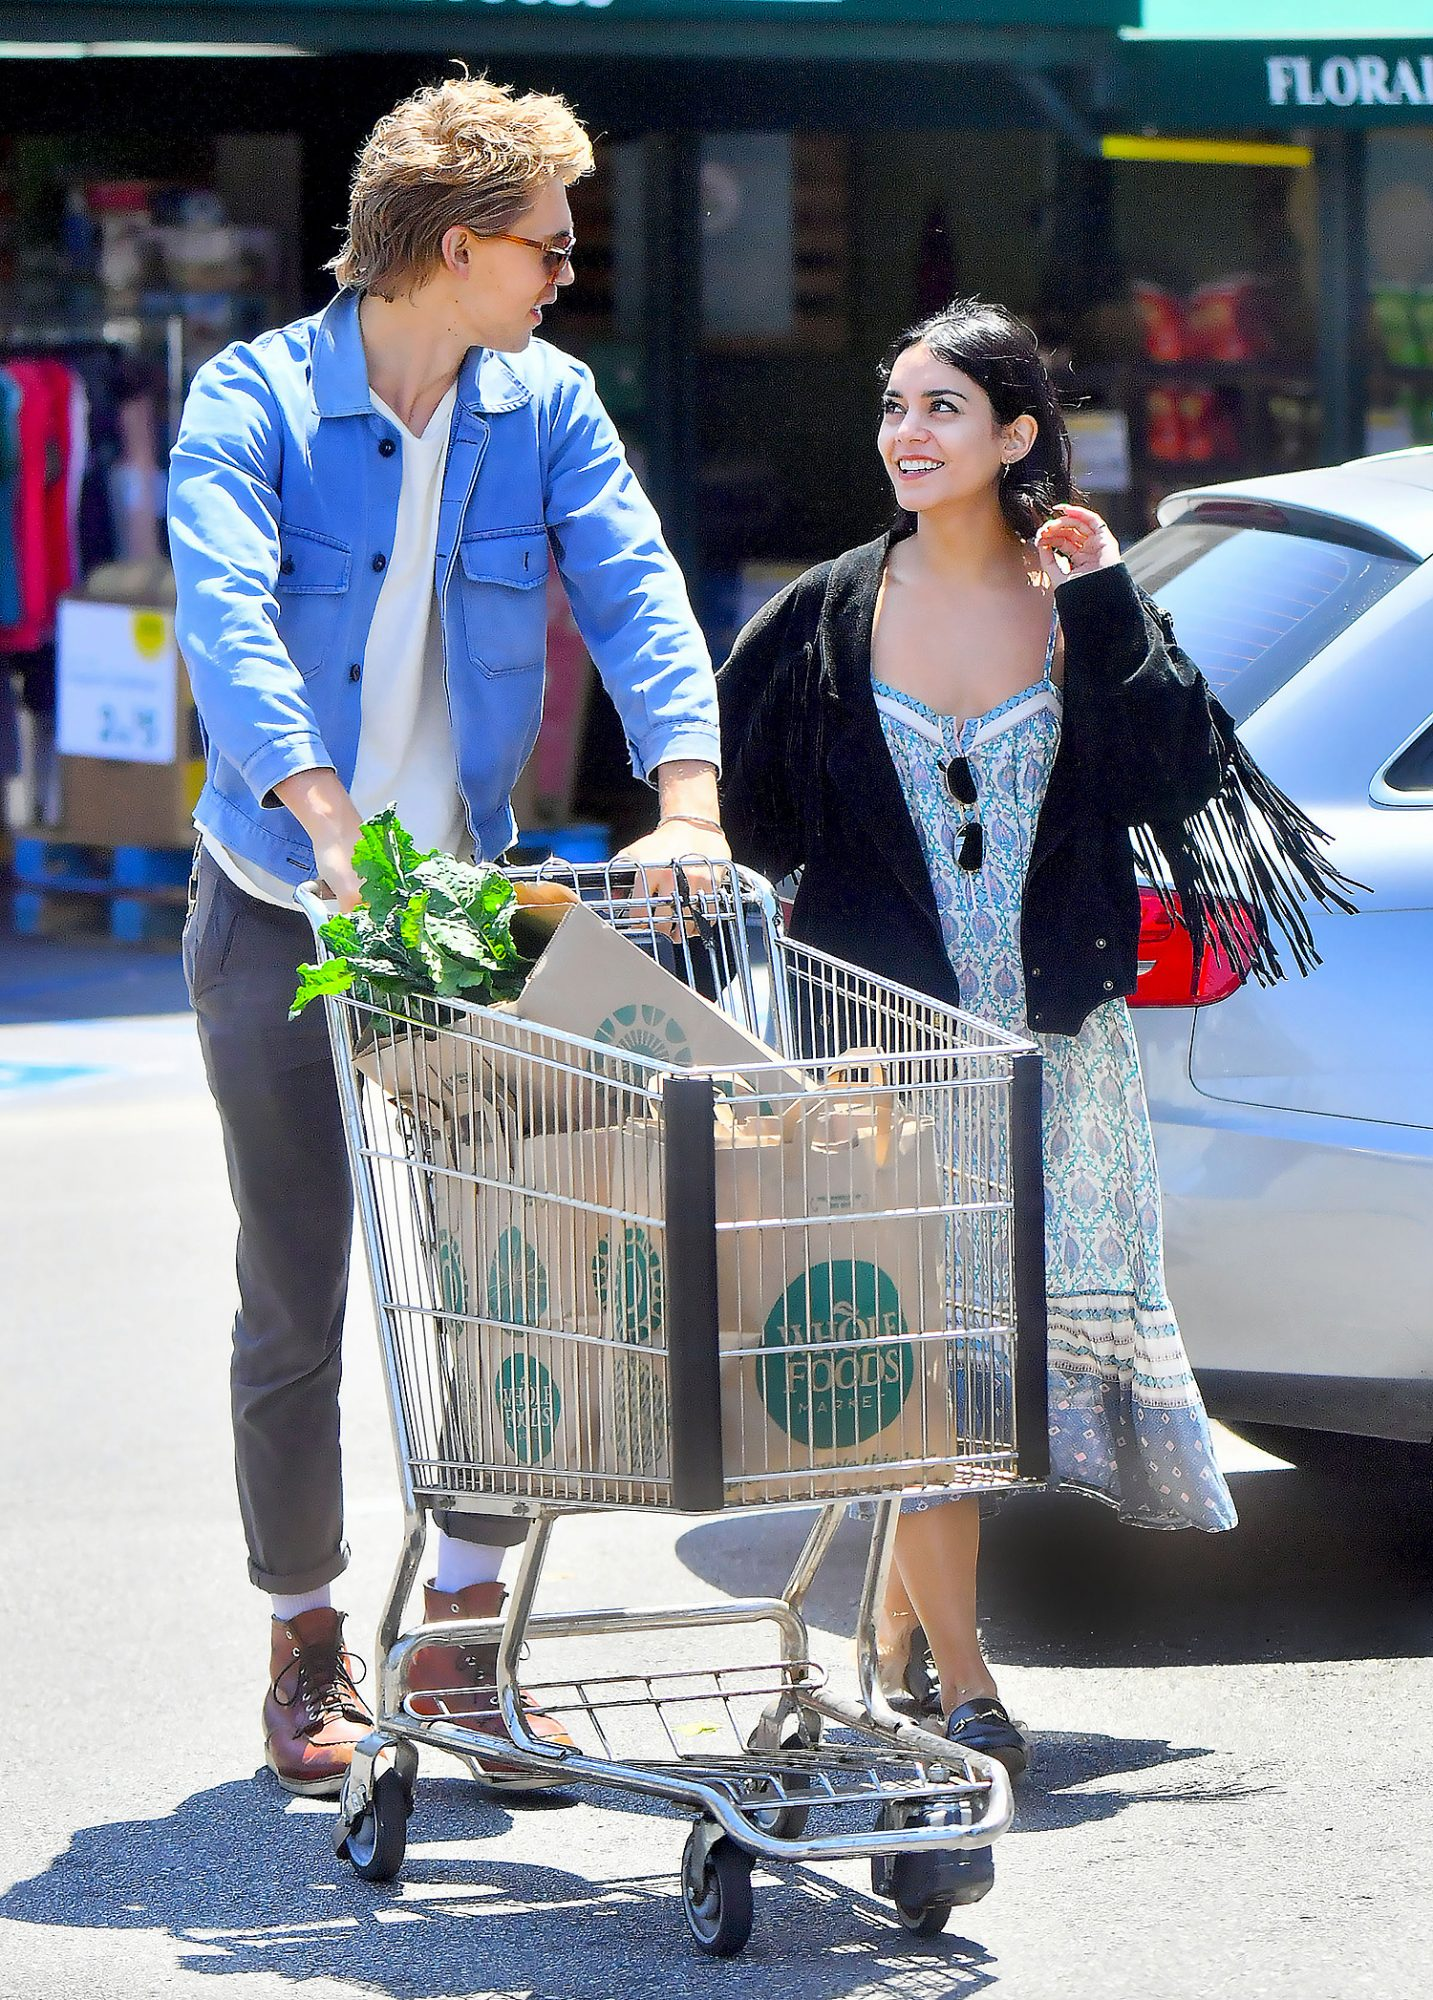 Vanessa Hudgens and boyfriend Austin Butler are all smiles during a grocery store run at Whole Foods in Los Angeles, CA